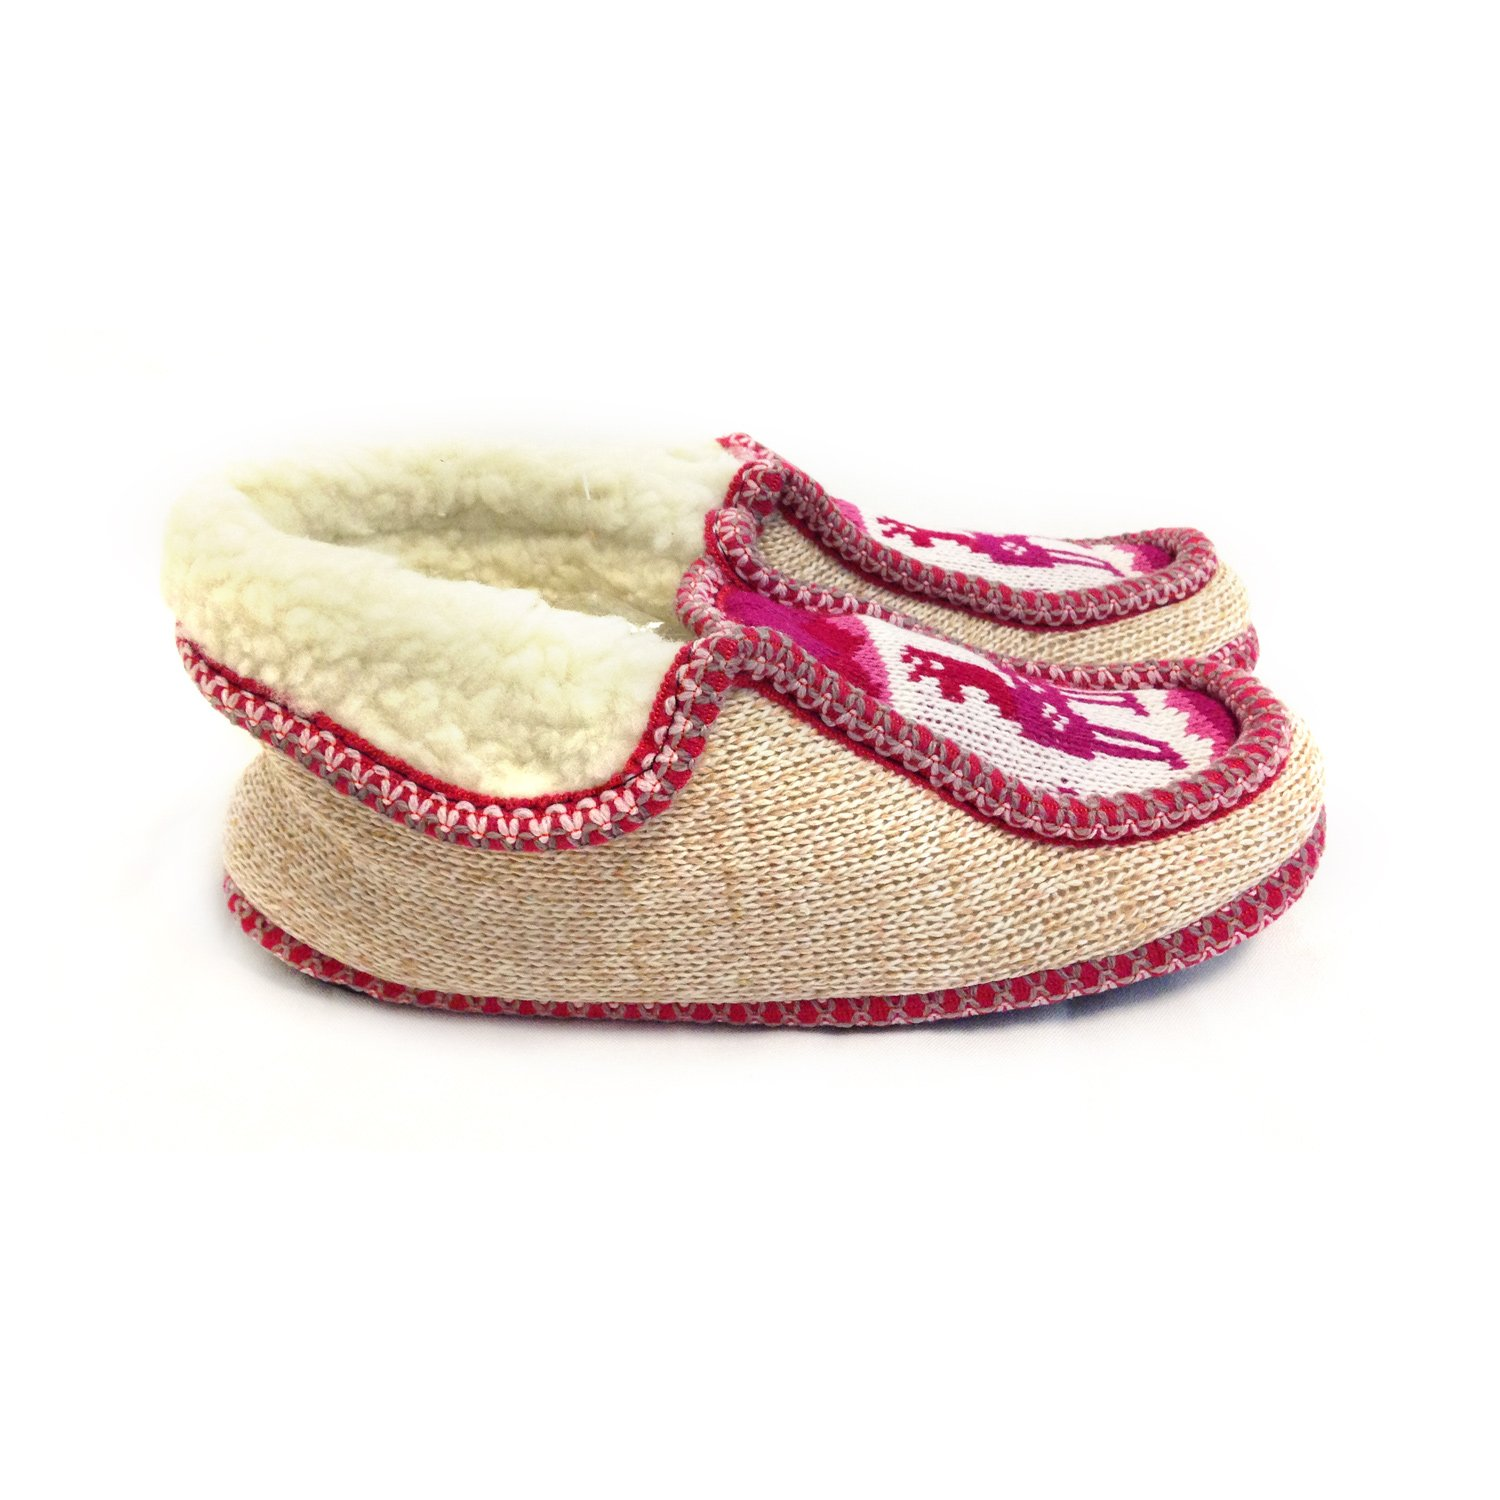 The Argentino Slippers Handmade Moccasin Real Wool Inside! from Salta Argentina